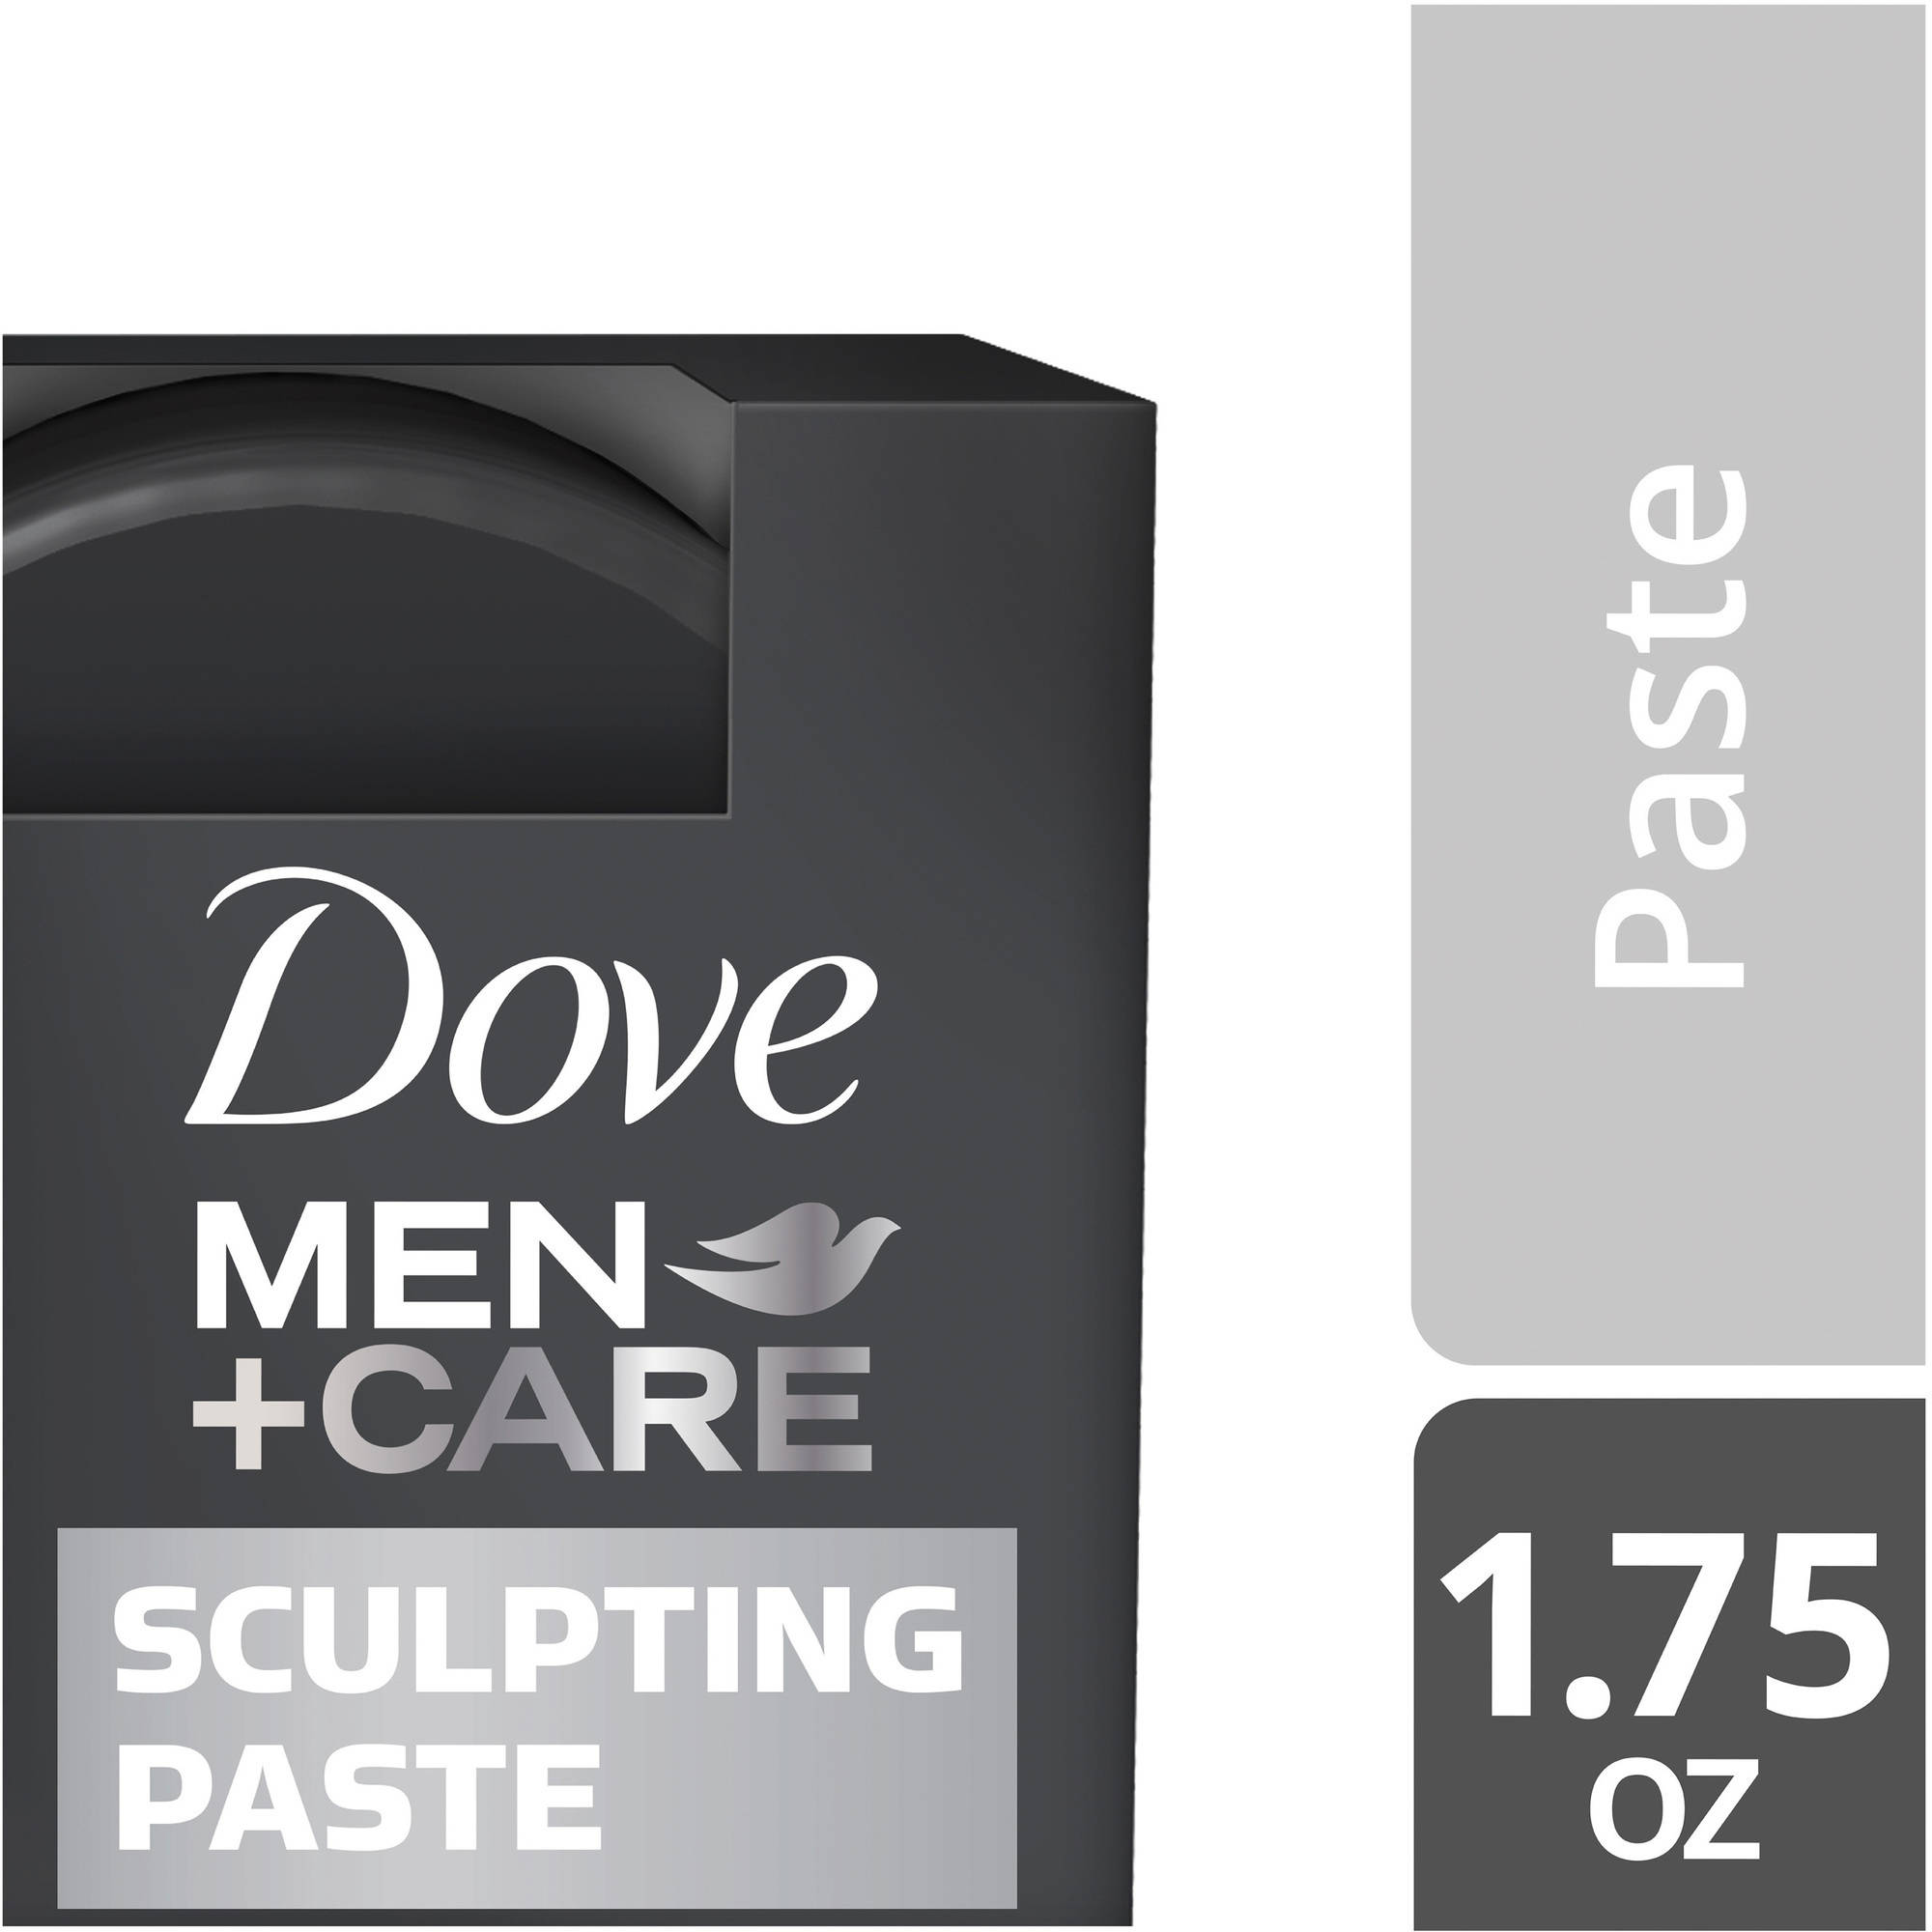 Dove Men+Care Sculpting Paste, 1.75 oz